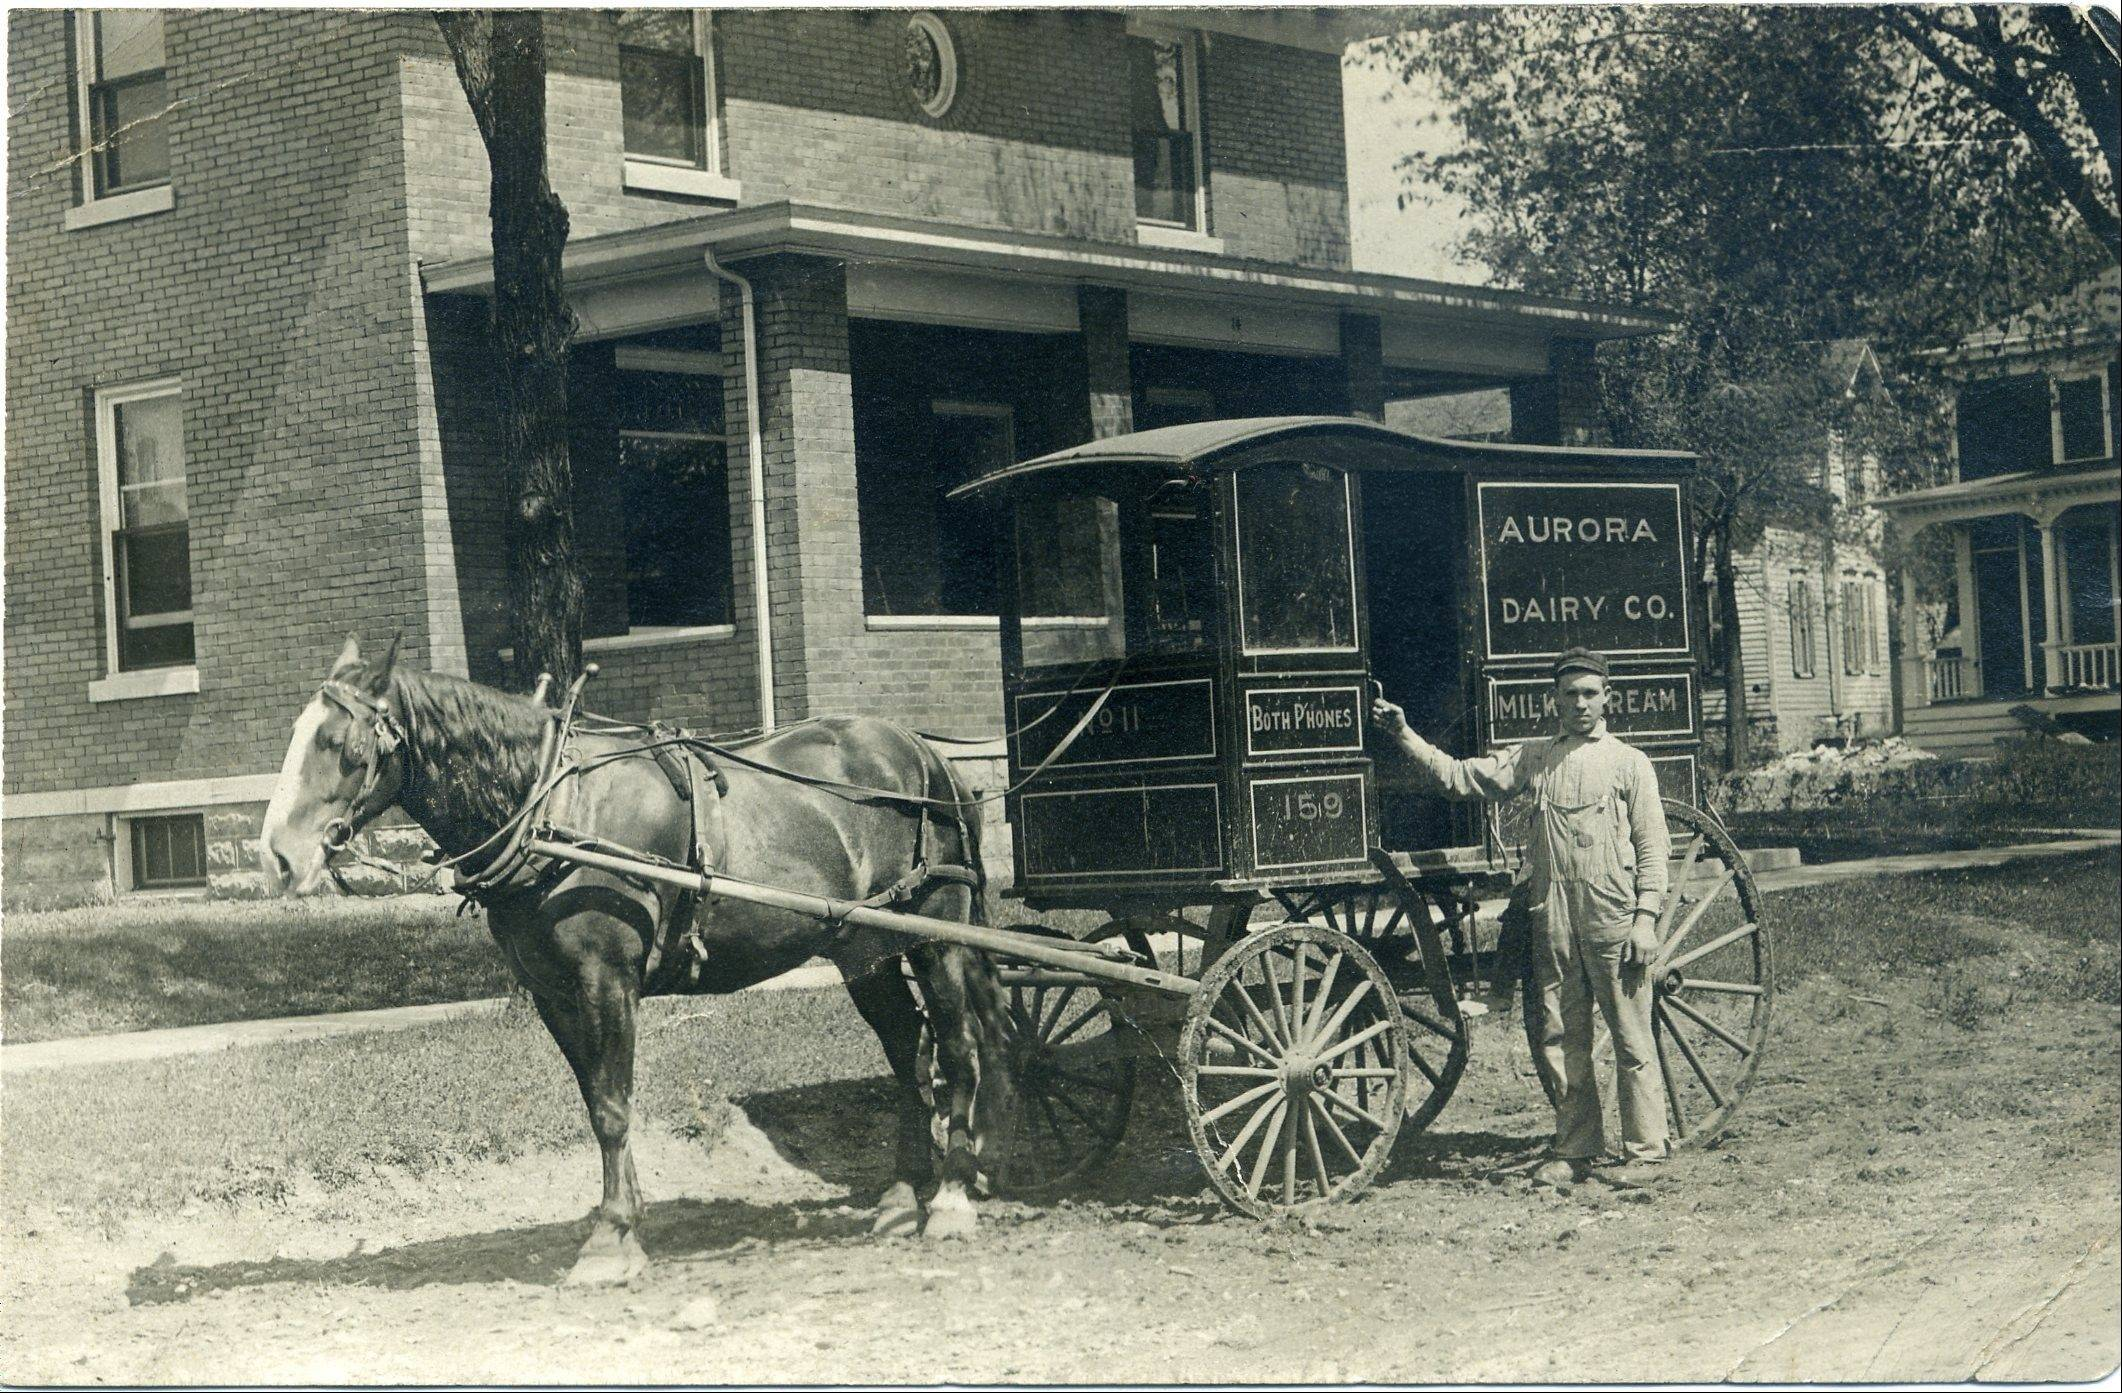 Aurora Dairy Wagon, circa 1910. The Aurora Dairy Company, located at Lake Street and Benton, was Aurora's earliest commercial dairy.